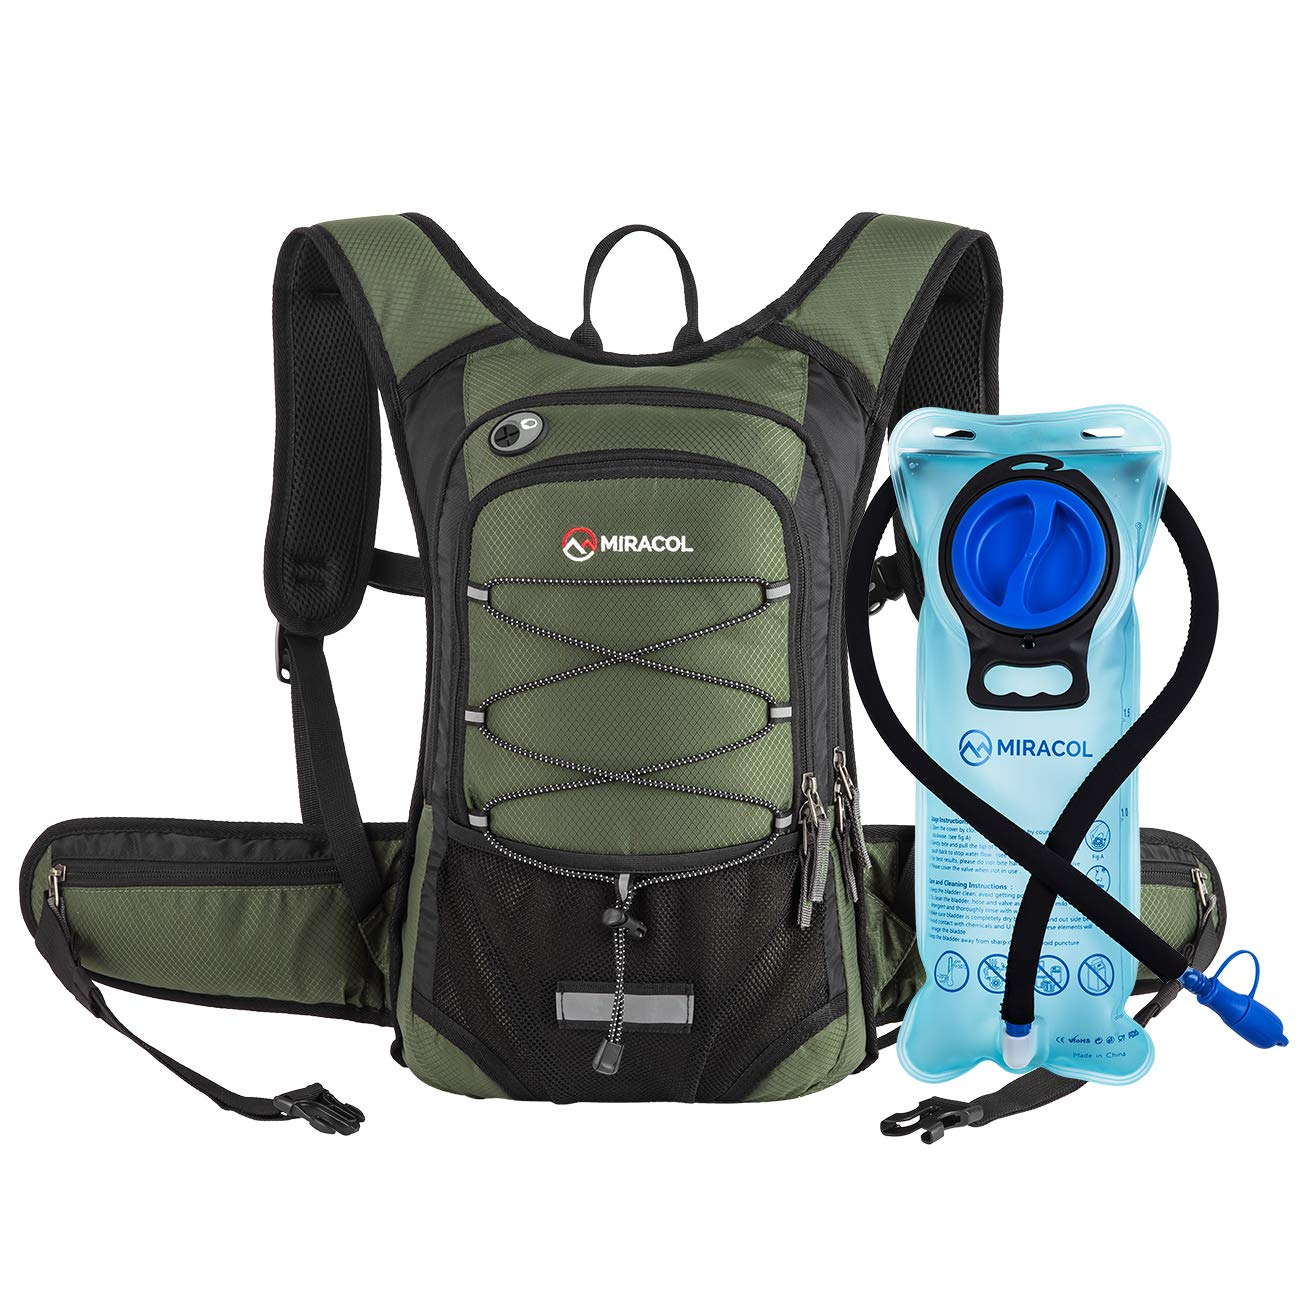 MIRACOL Hydration Backpack with 2L Water Bladder, Thermal Insulation Pack Keeps Liquid Cool up to 4 Hours, Perfect Outdoor Gear for Skiing, Running, Hiking, Cycling (Olive) by MIRACOL